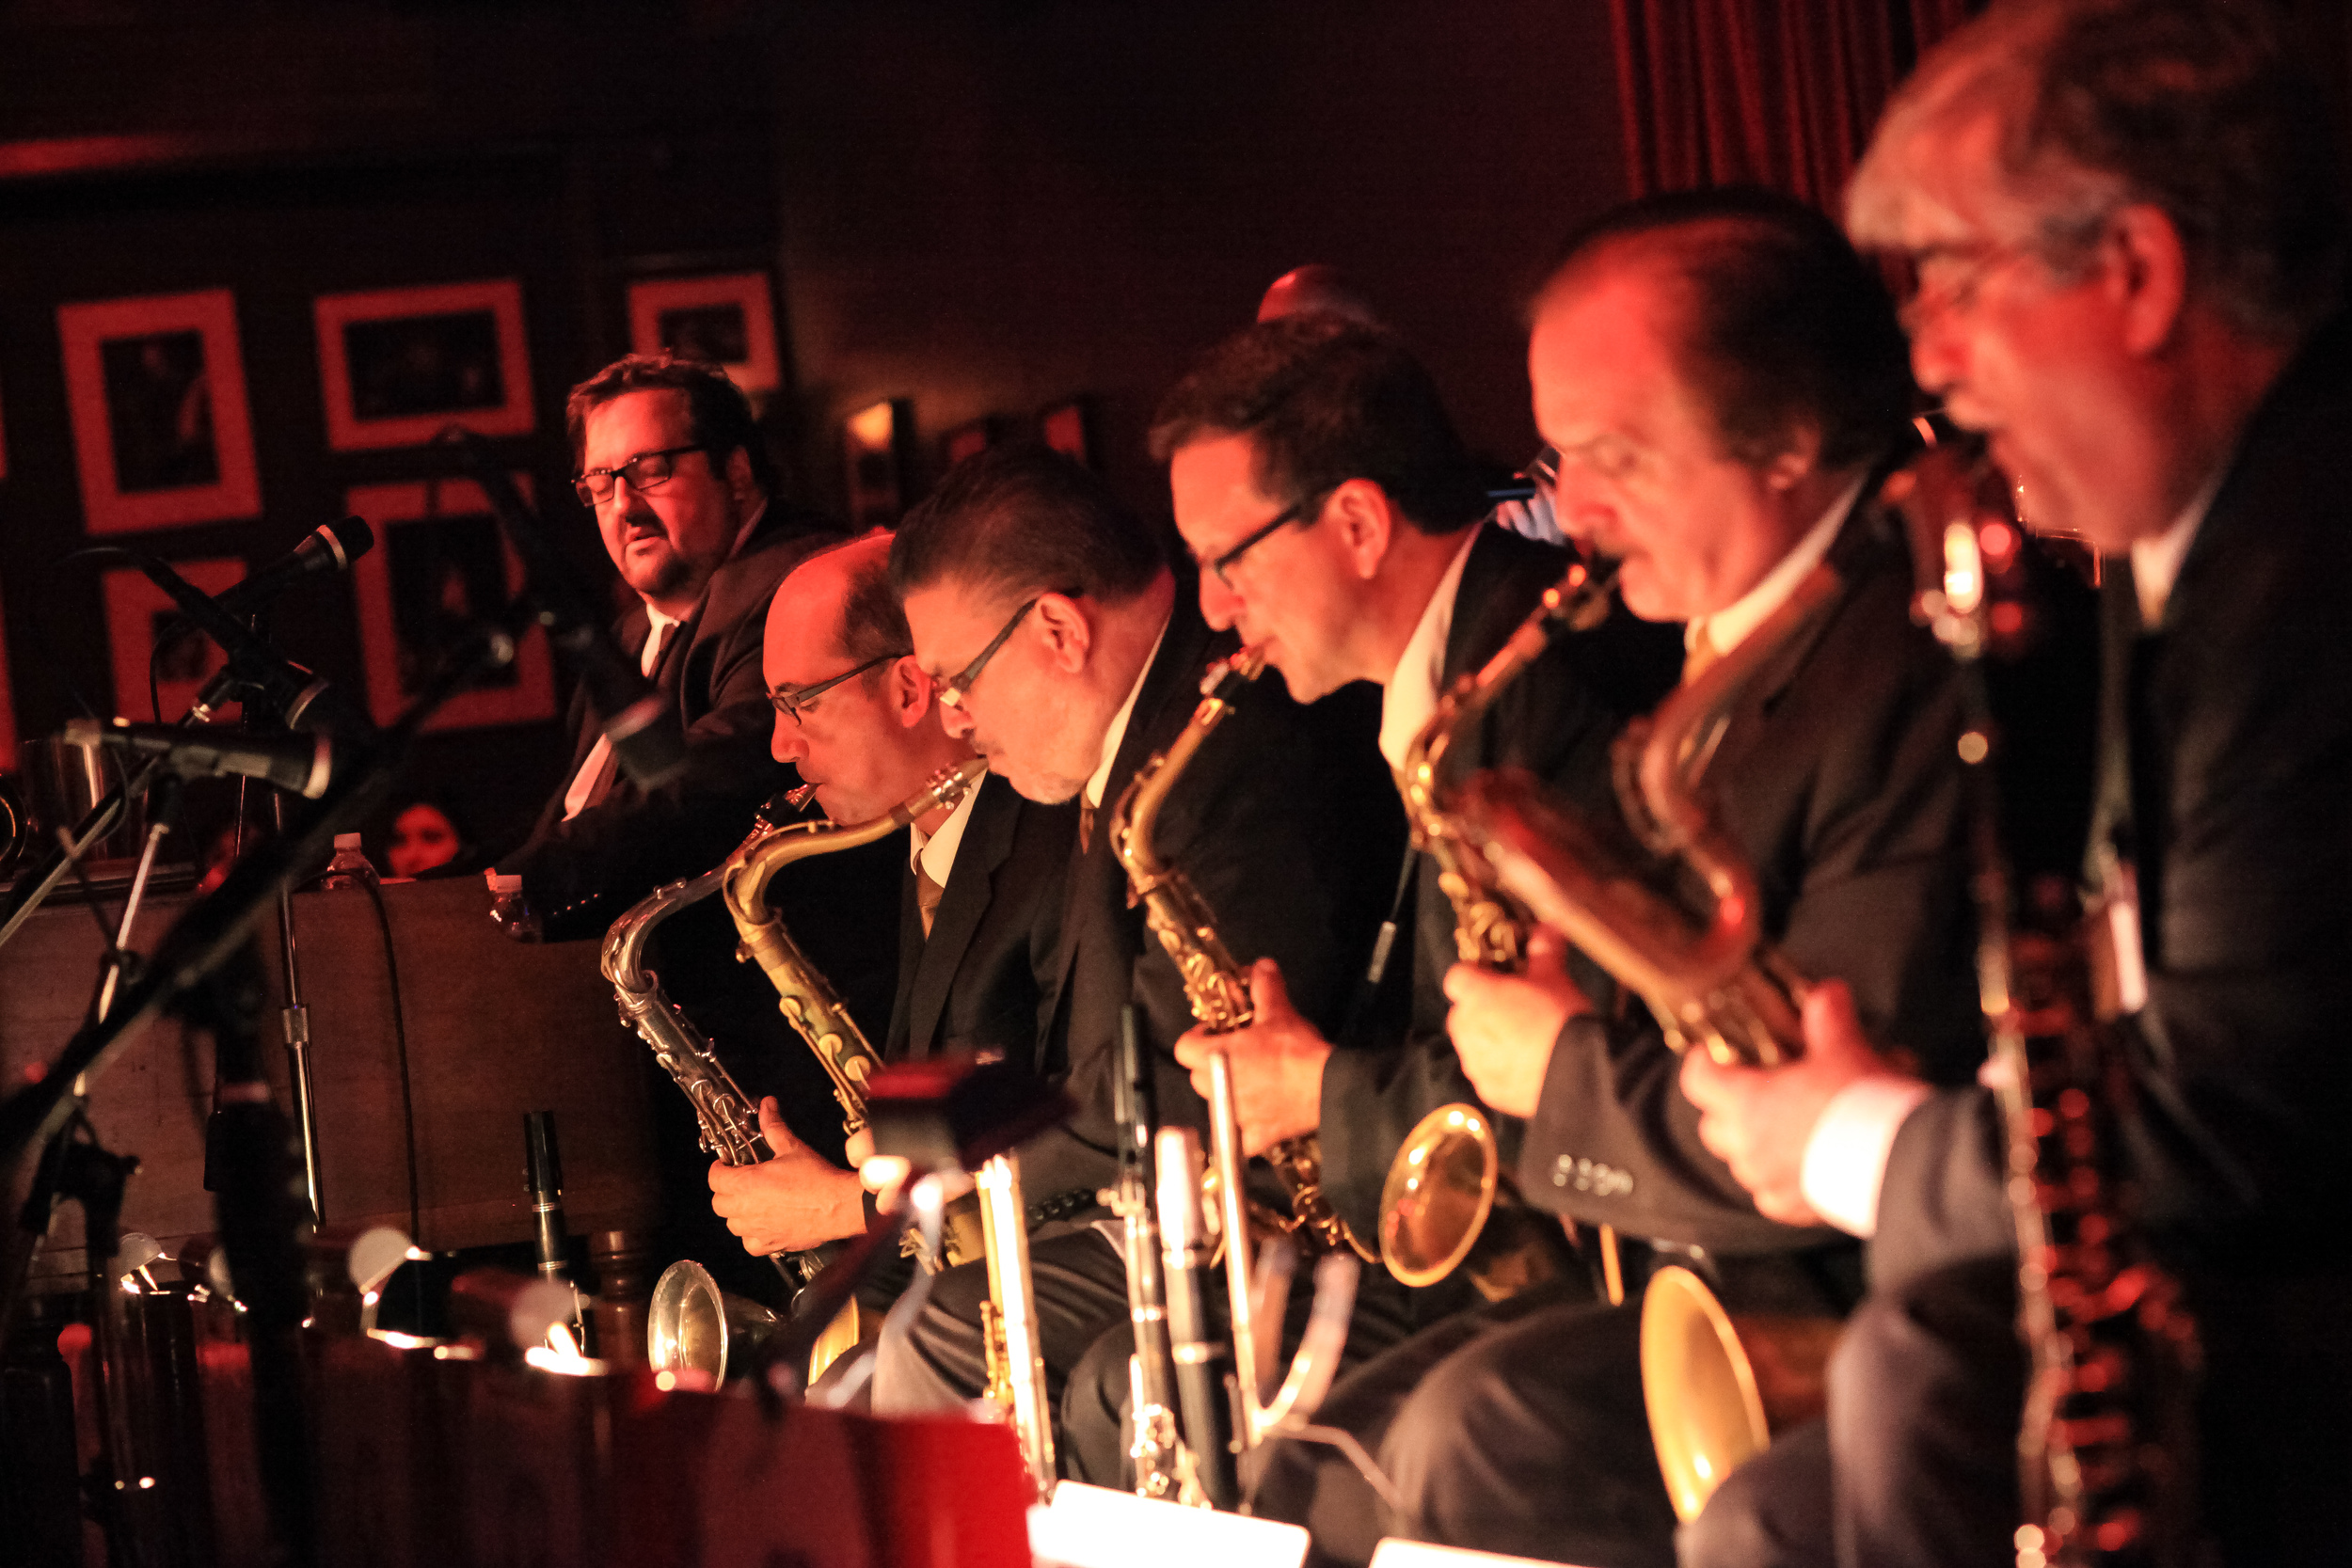 Copy of Swinging Sax Section